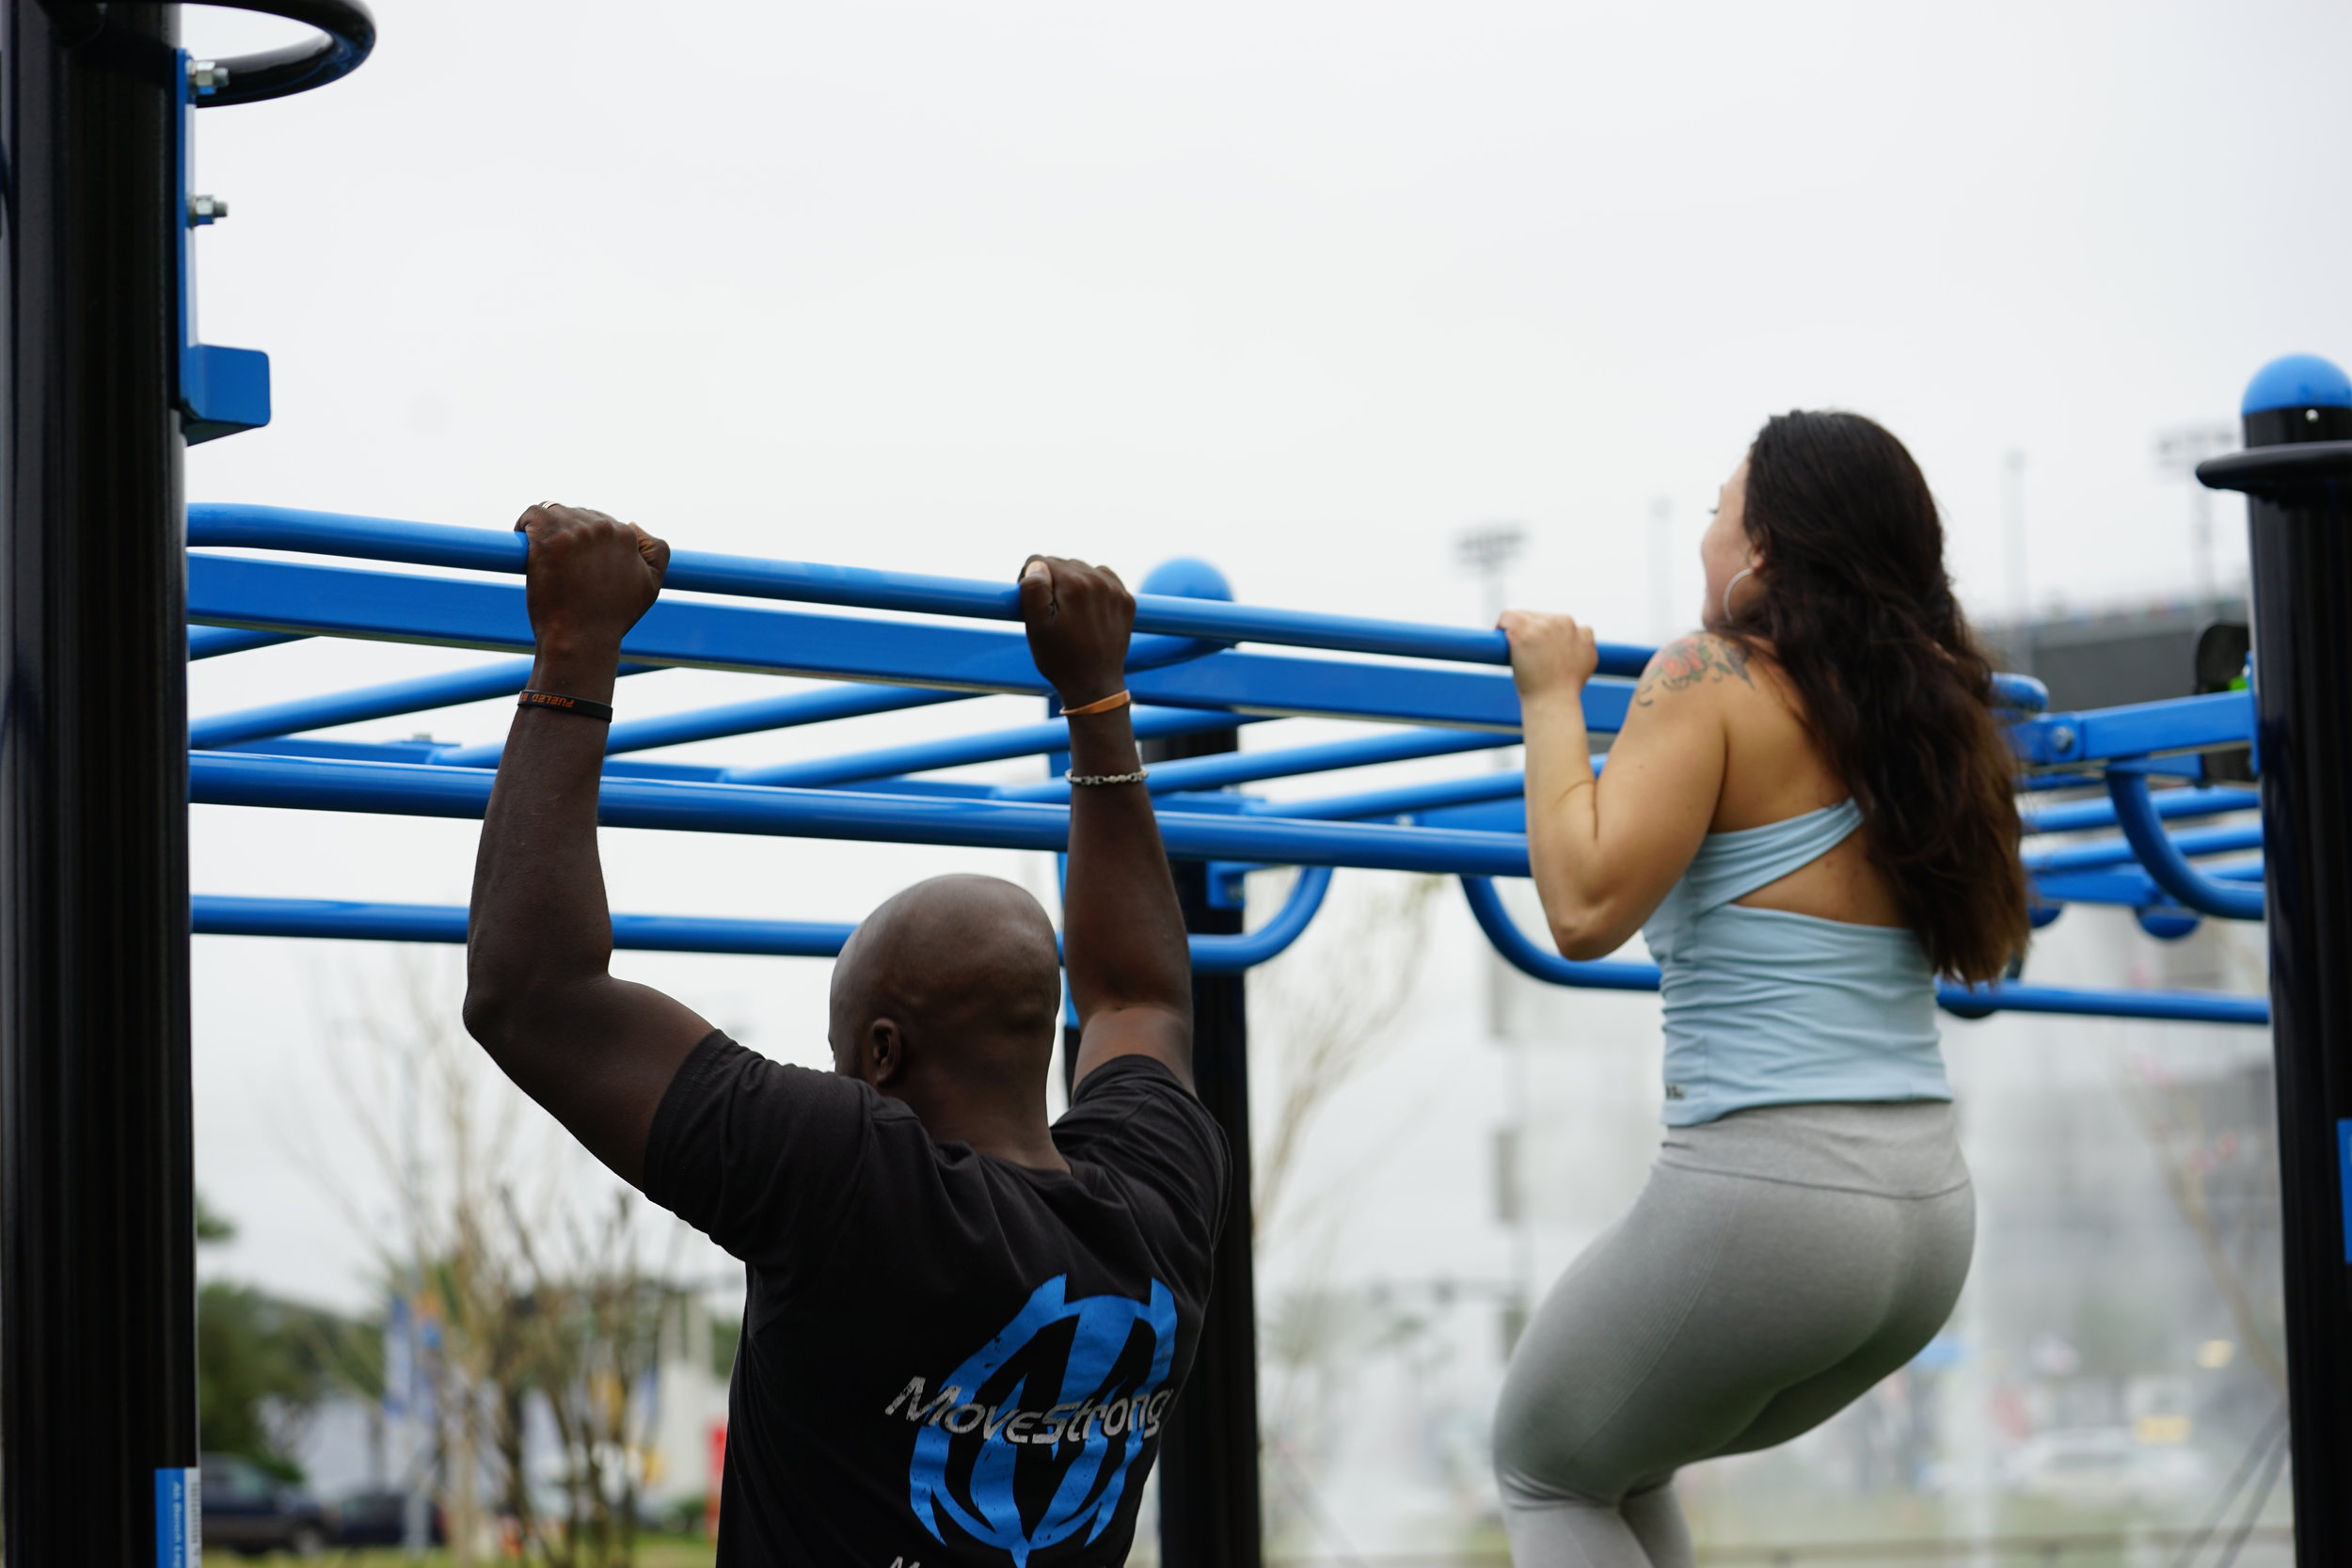 Double Monkey Bars with Side Rail Pull-up bars